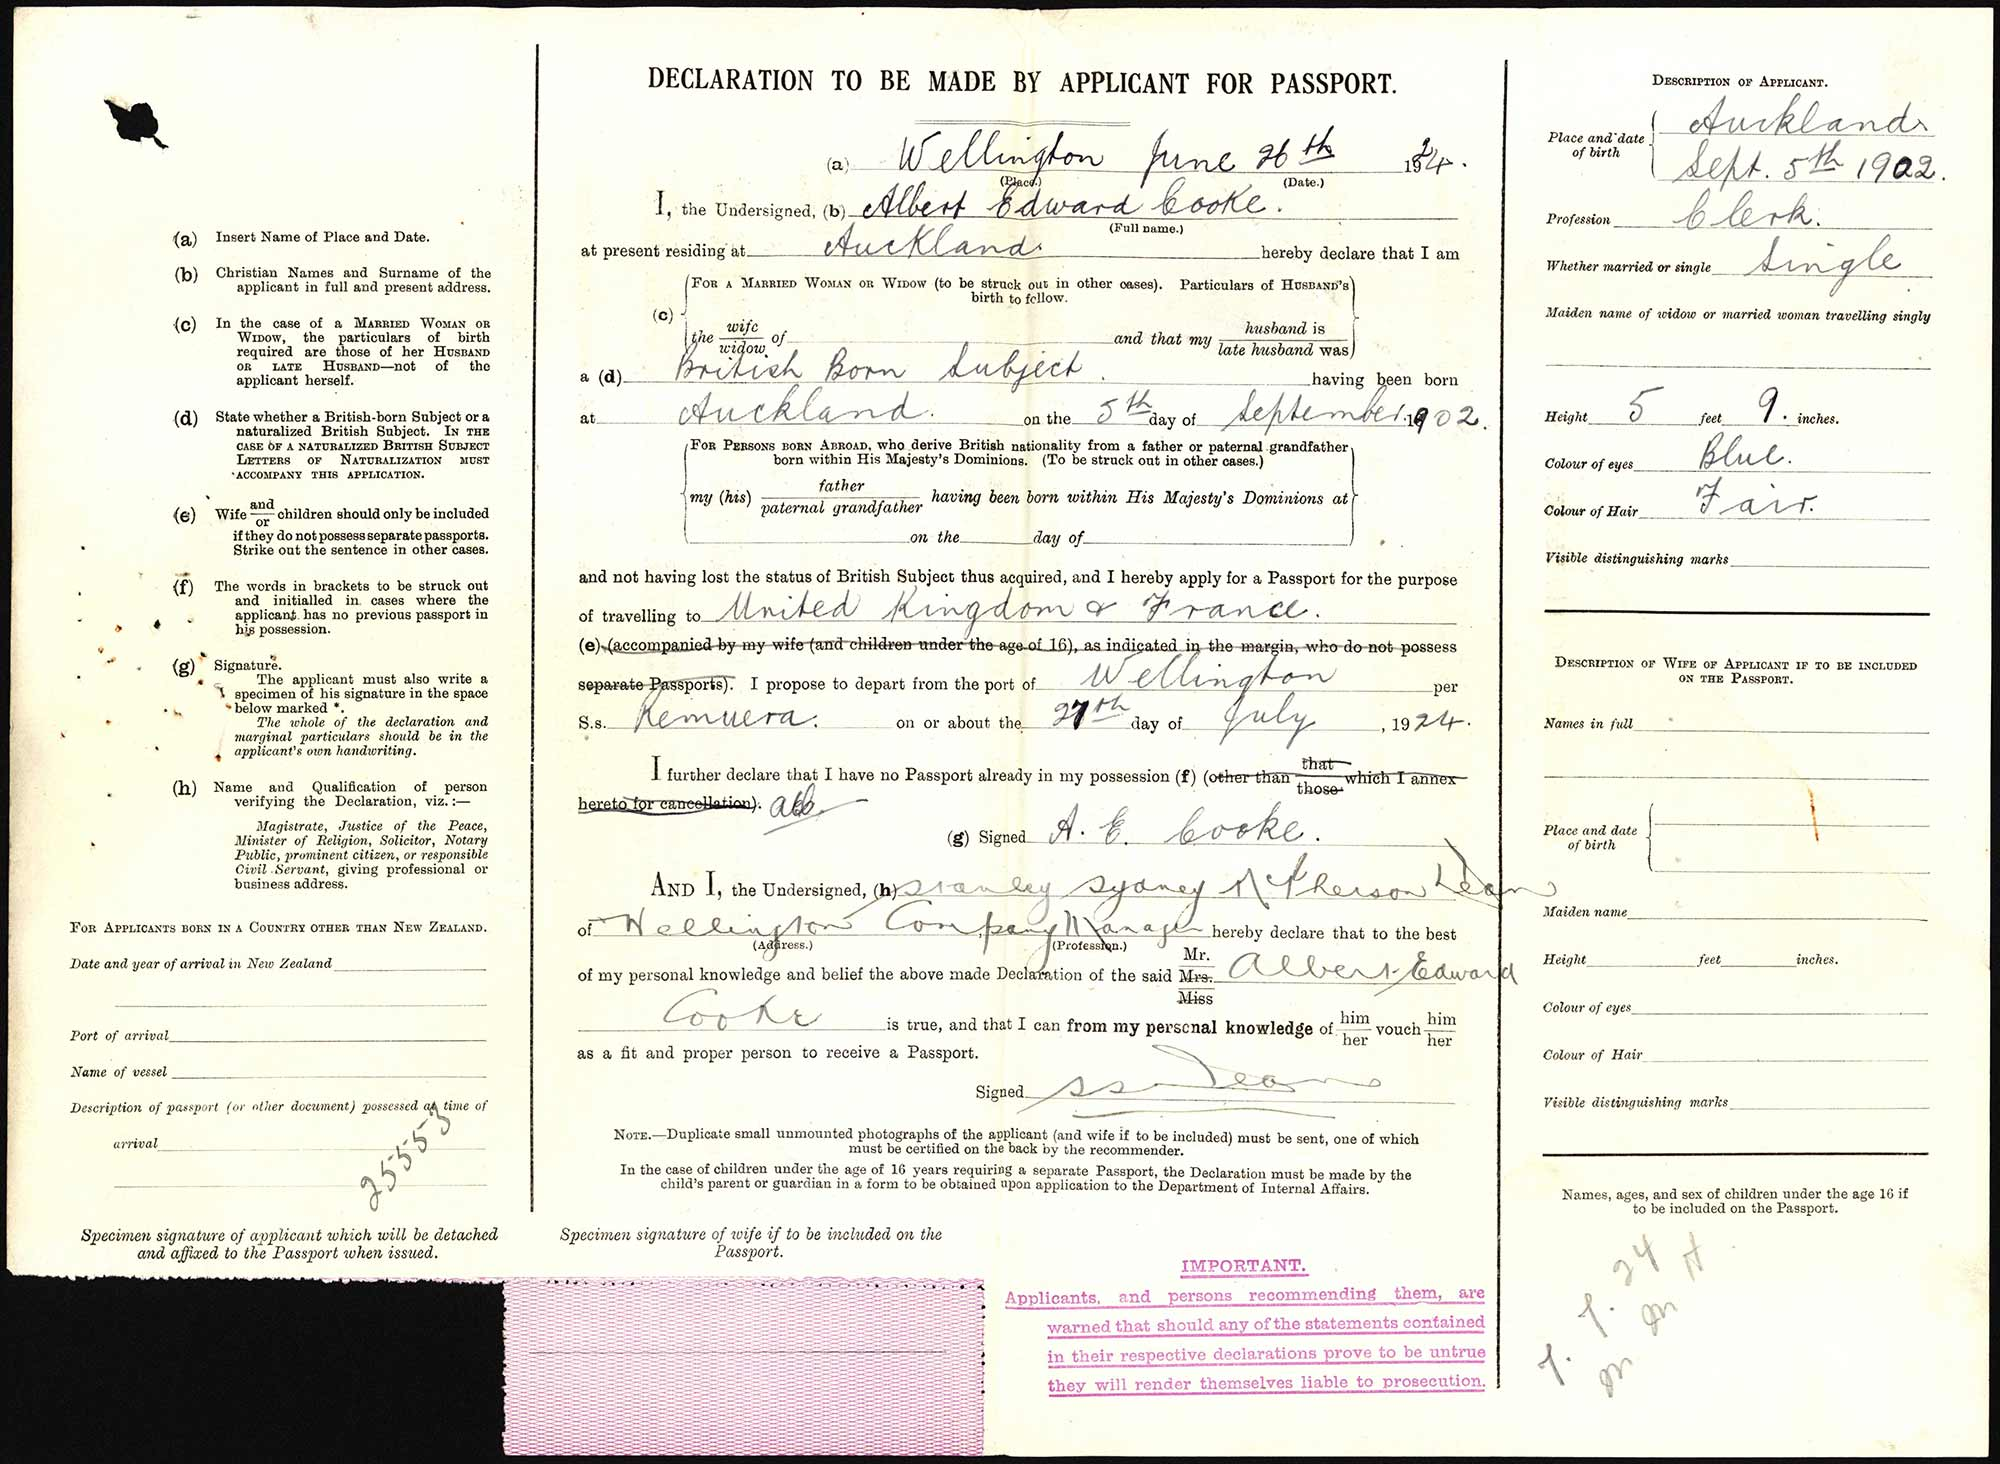 Albert Edward Cooke passport application